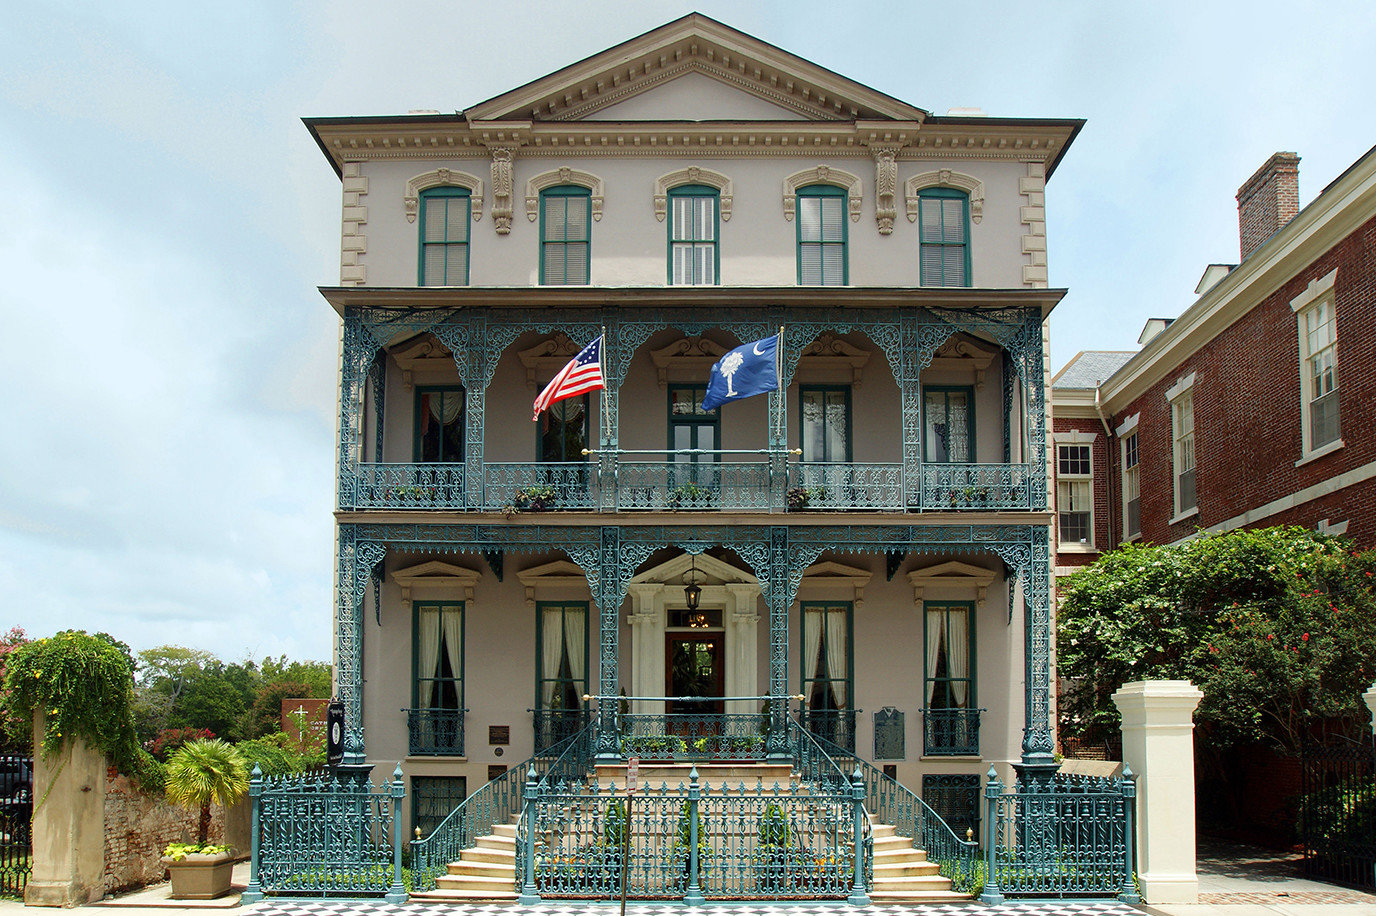 Hotels Trip Ideas outdoor sky building landmark property house mansion classical architecture home estate Architecture facade Villa real estate historic house window residential area stately home Balcony column elevation official residence stone